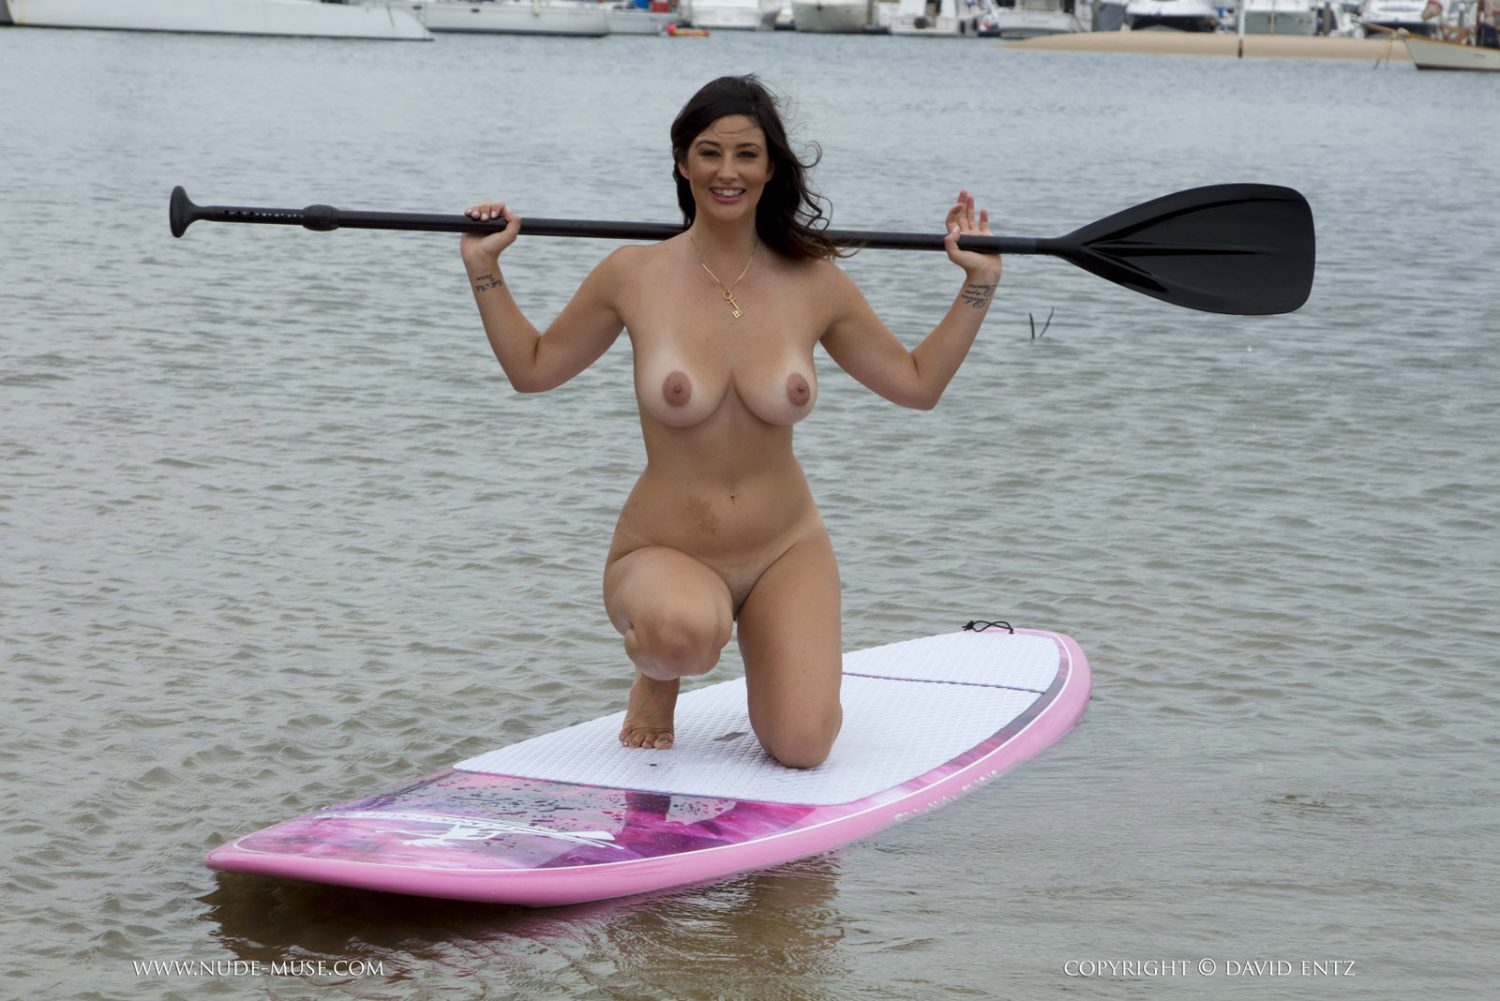 Scarlett Morgan Paddle Boarding Nude Muse